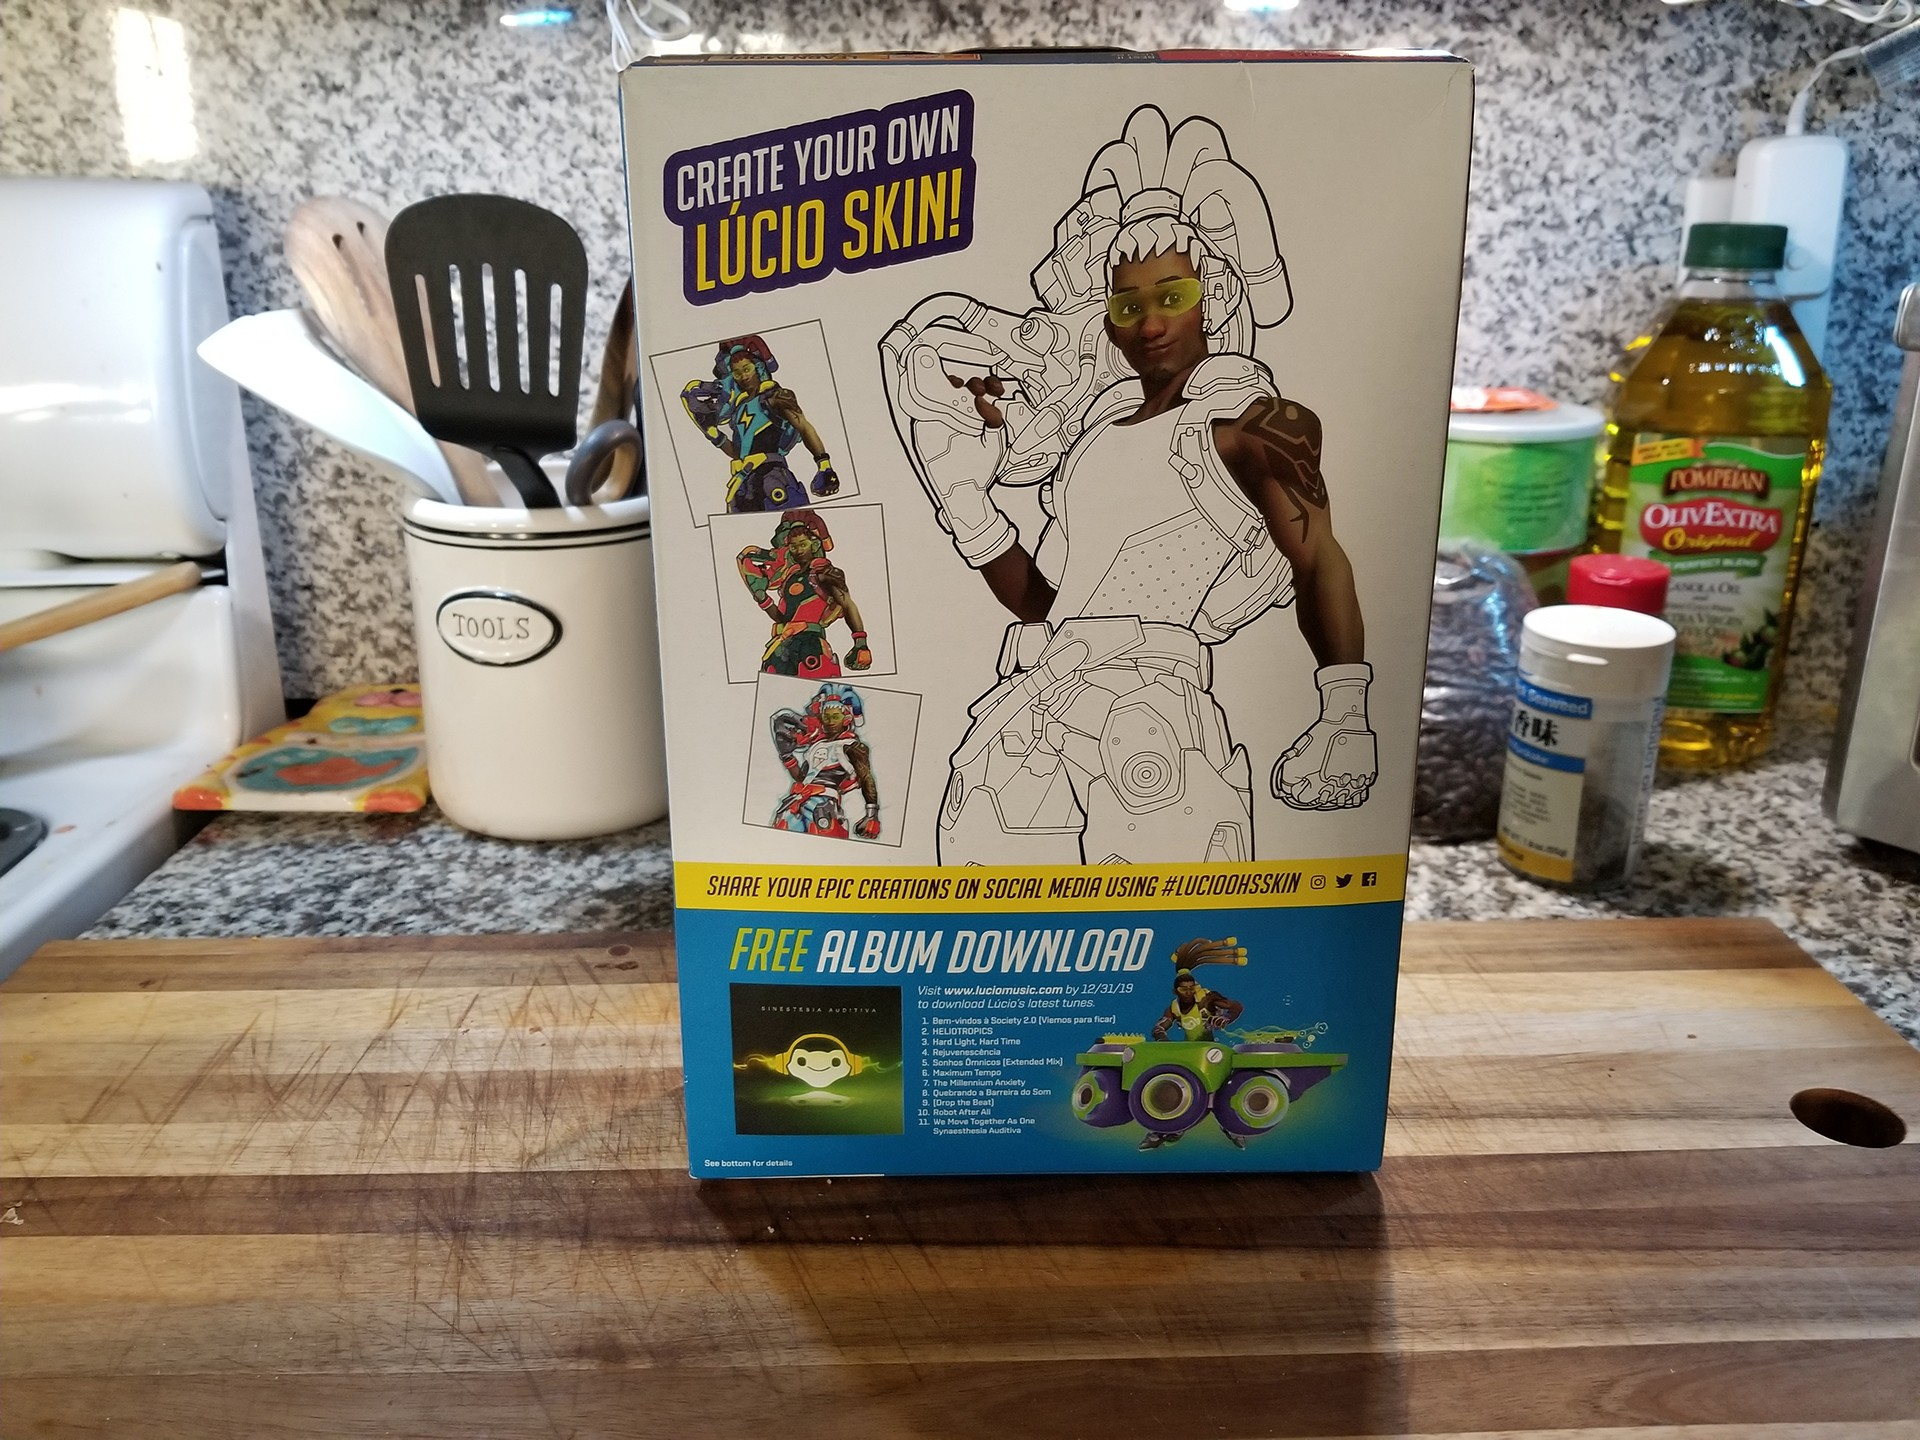 Lucio Ohs Cereal skin